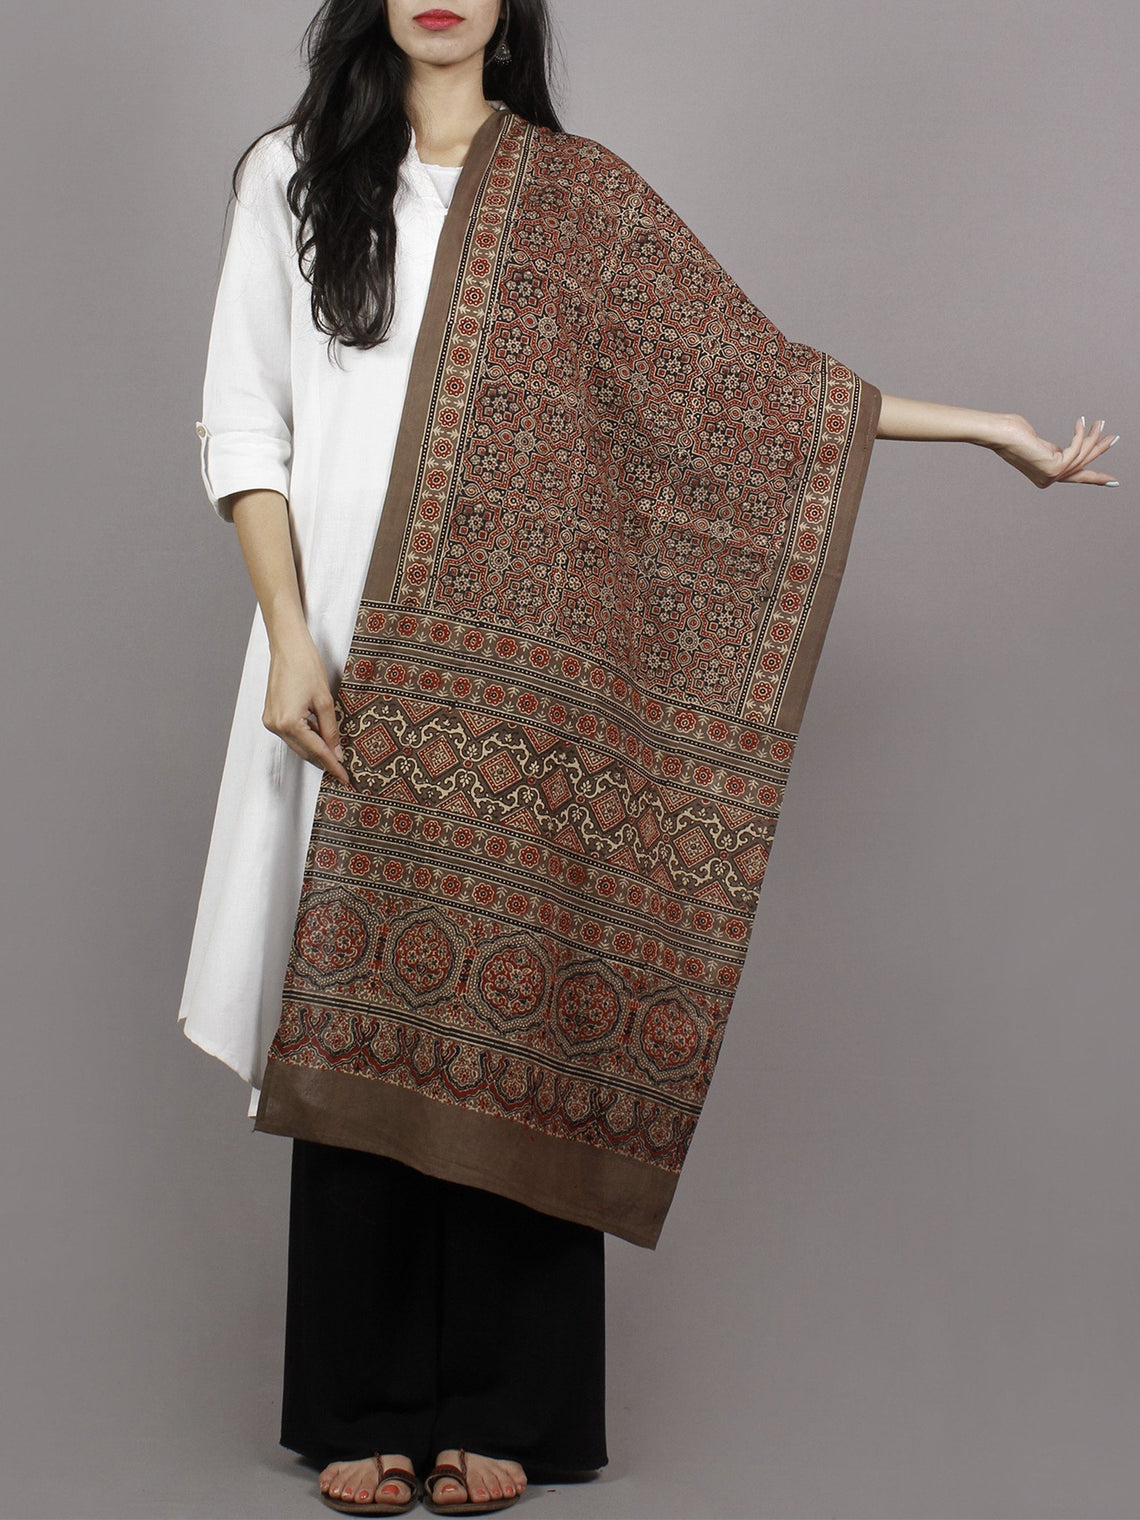 Brown Beige Maroon Black Mughal Nakashi Ajrakh Hand Block Printed Cotton Stole - S63170130